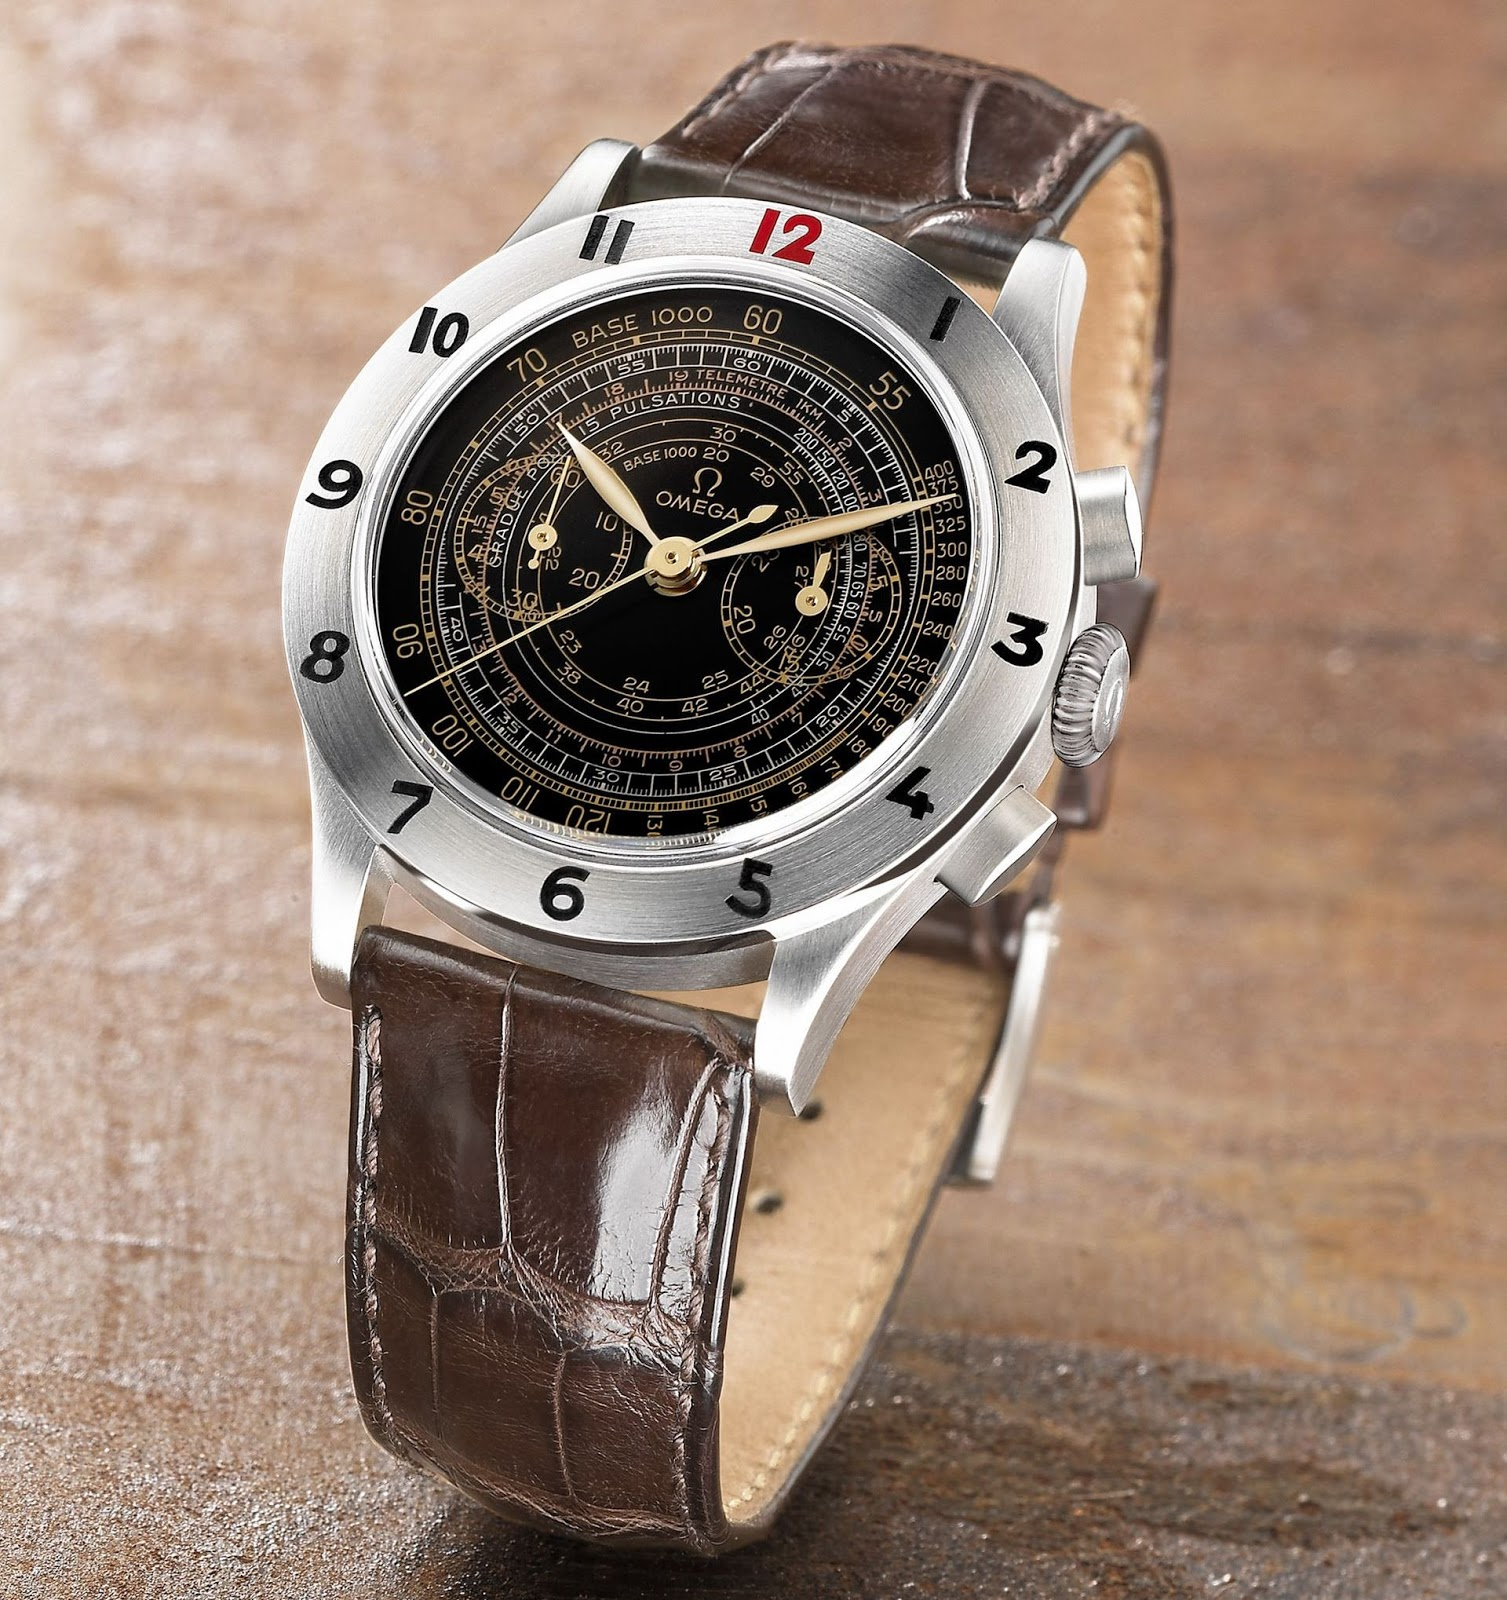 OMEGA Museum Collection 2003 - Mechanical Chronograph with Tachymeter, Telemeter & Pulsometer